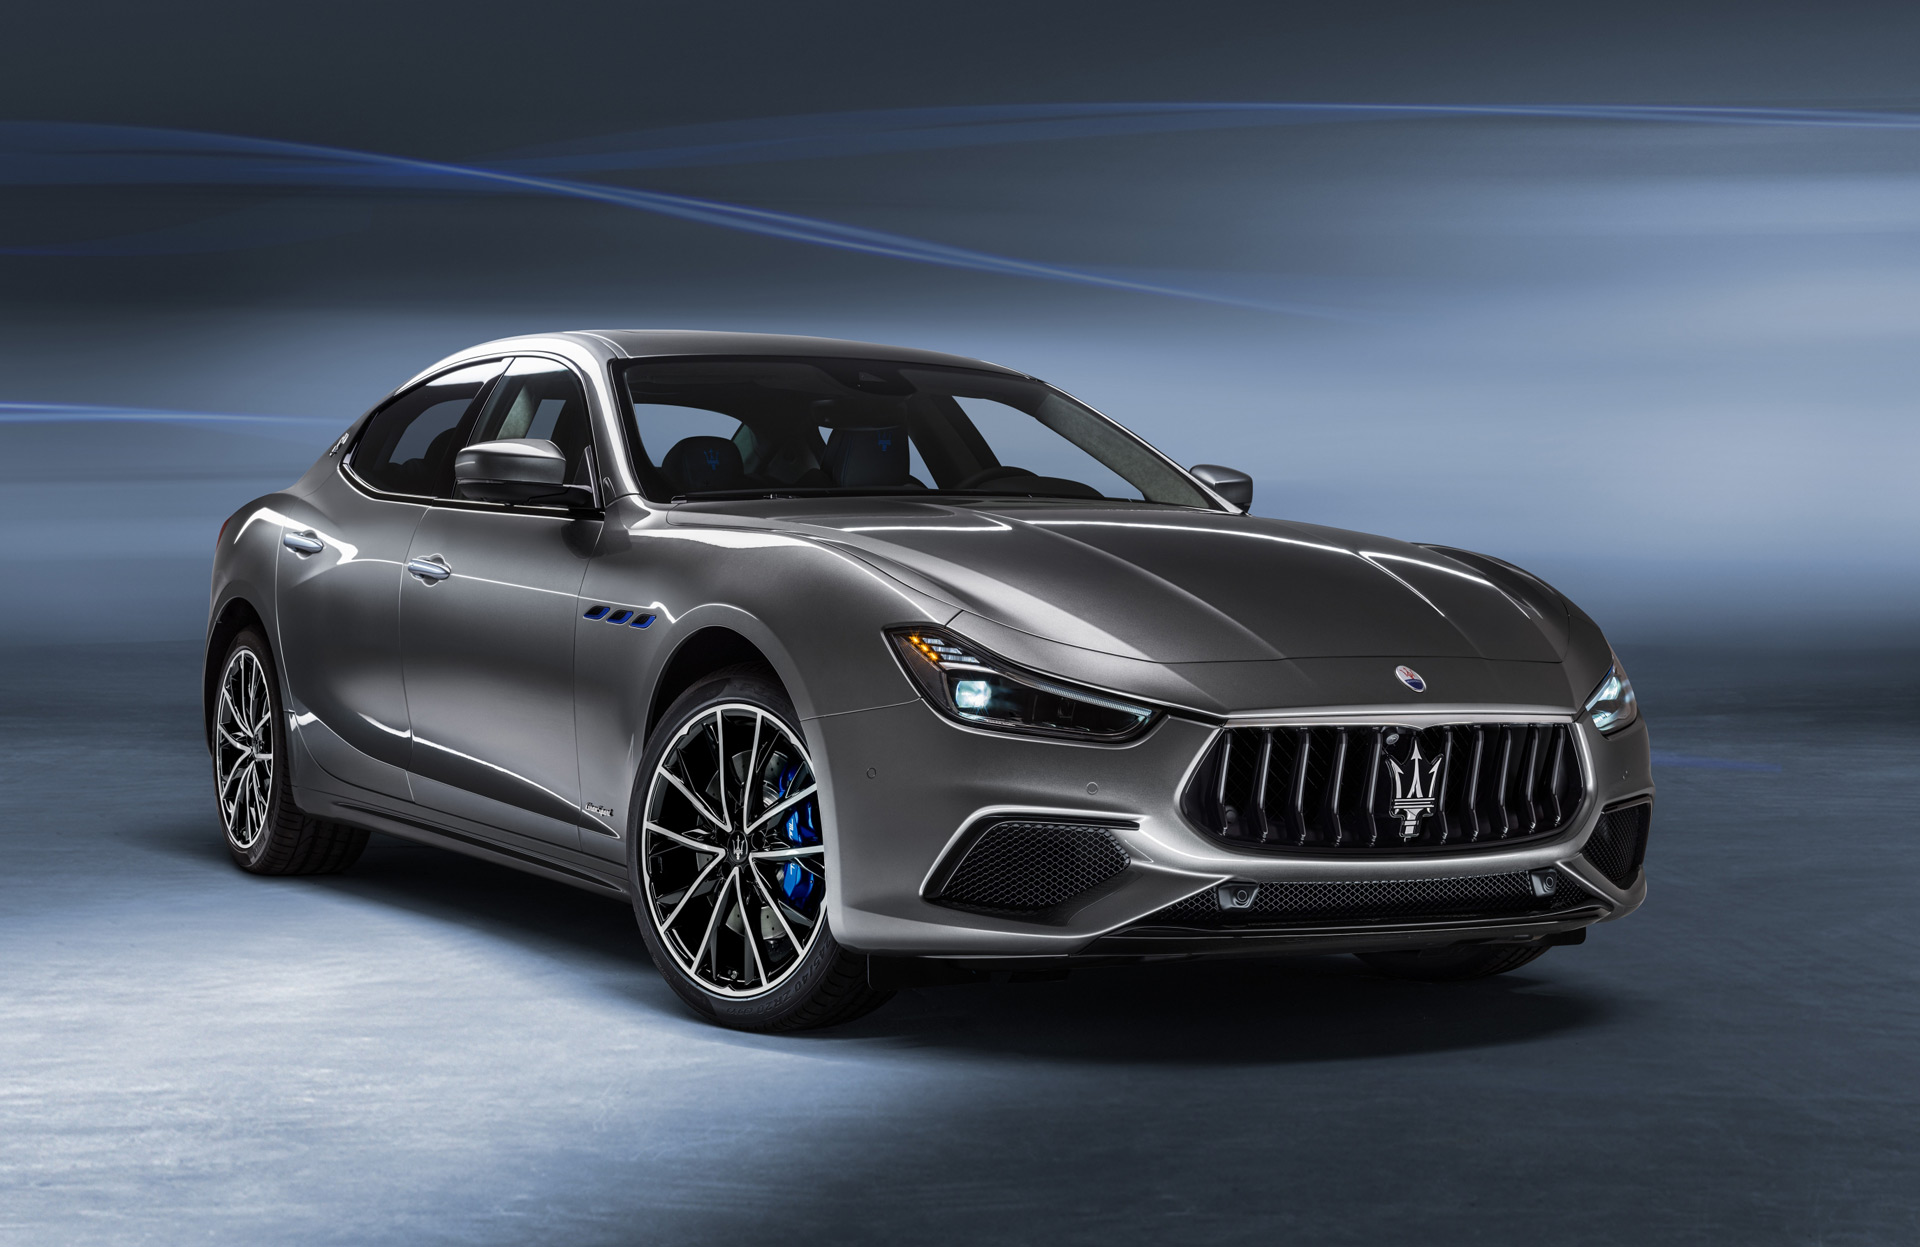 2021 Maserati Ghibli Hybrid Marks Start Of Brand S Electrification